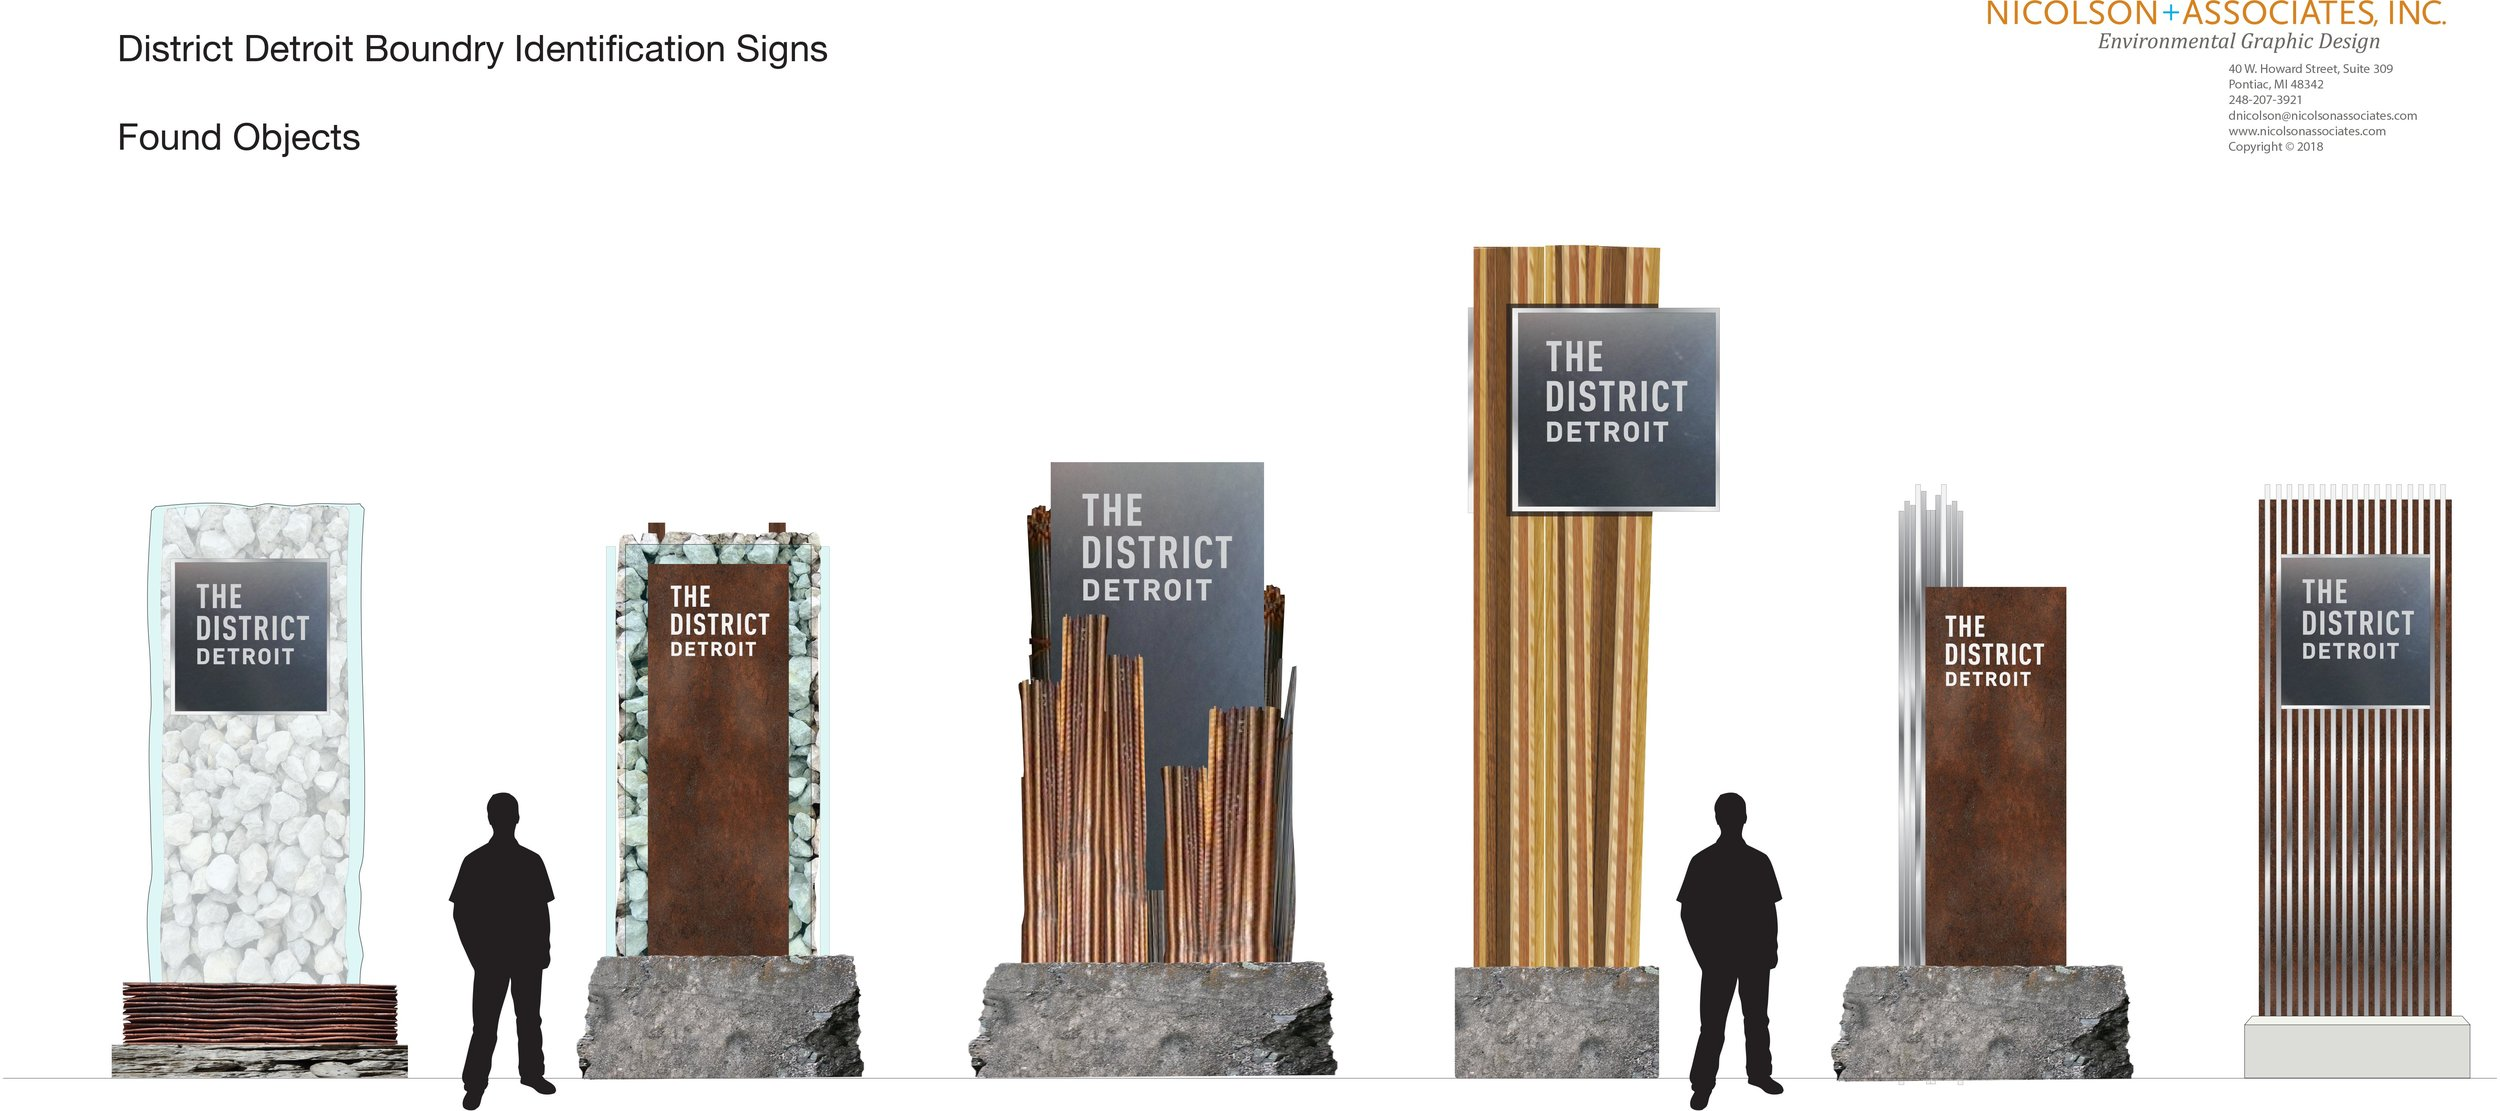 Wayfinding Boundary Identification